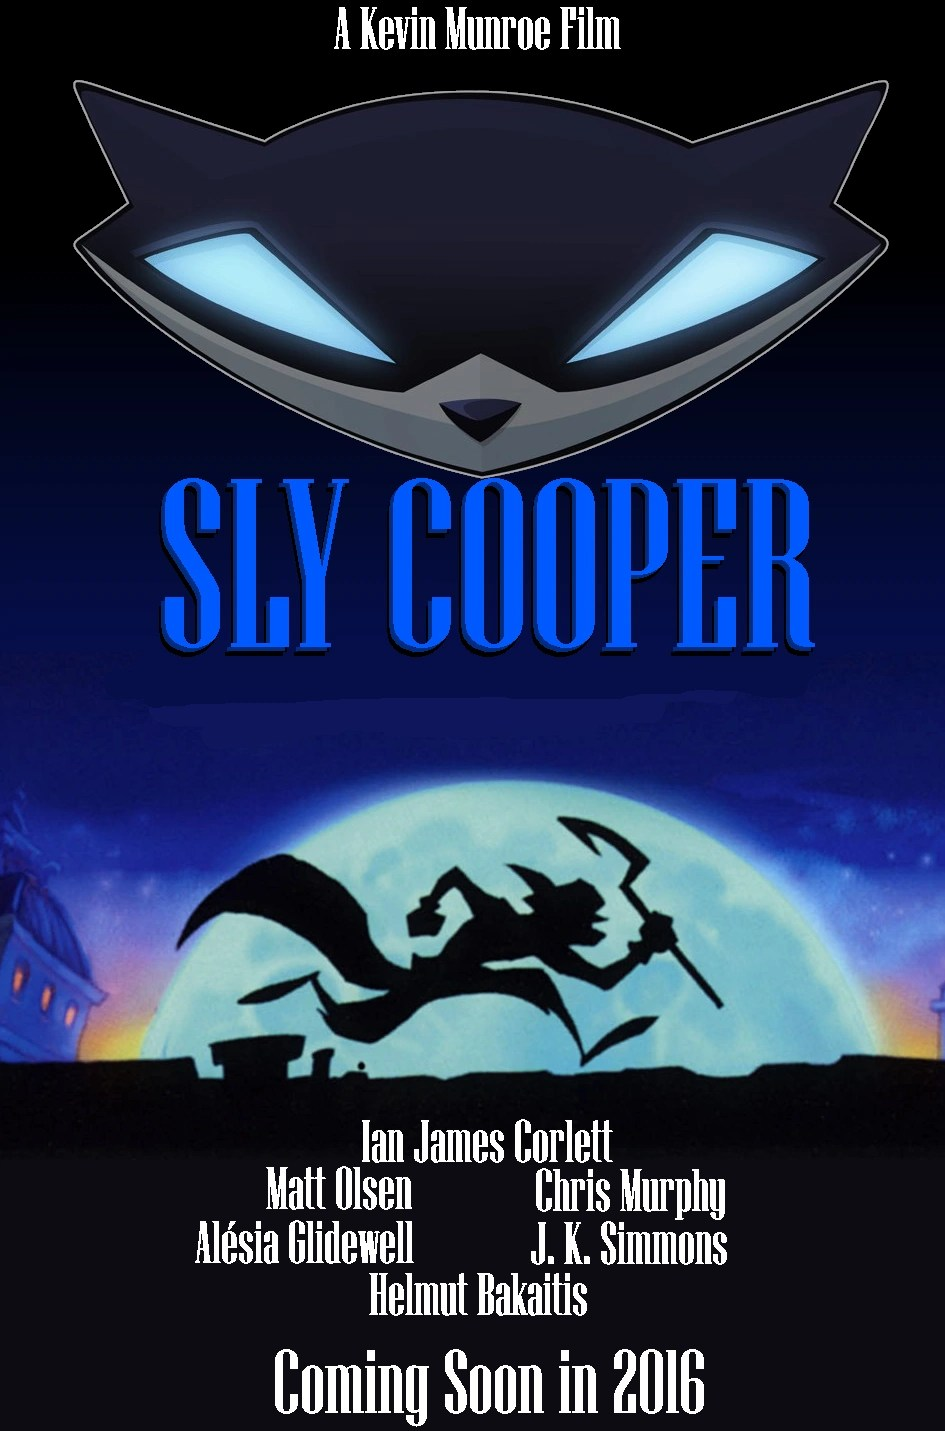 sly cooper film idea